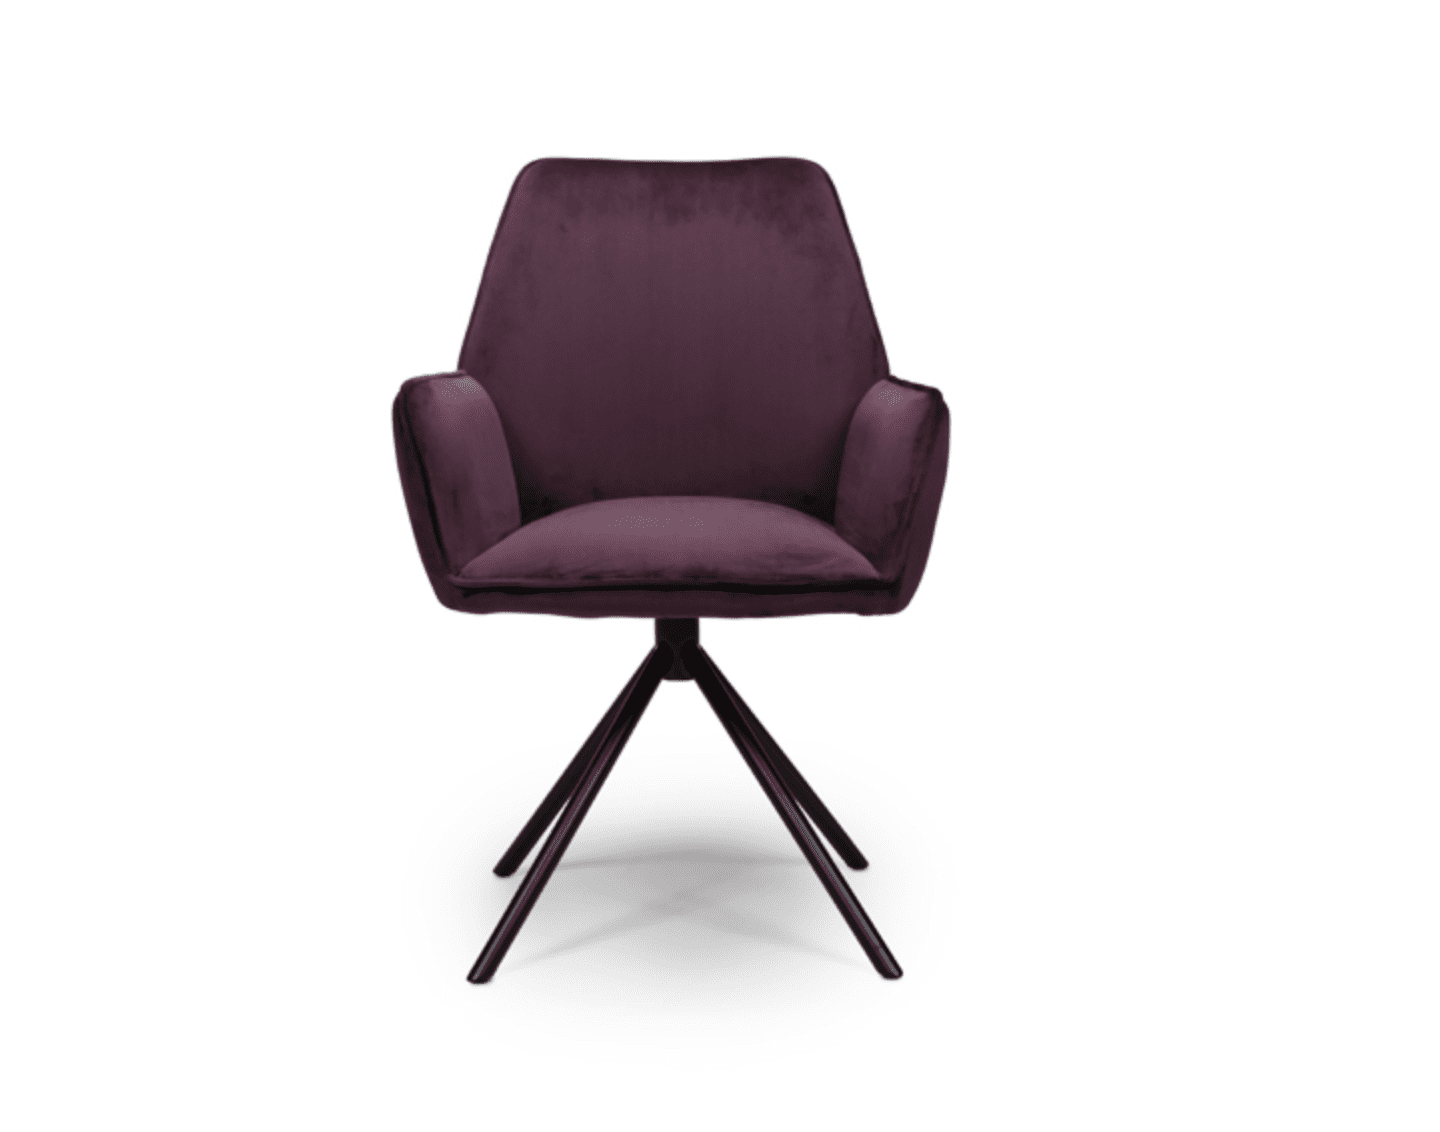 UNO chairs mulberry